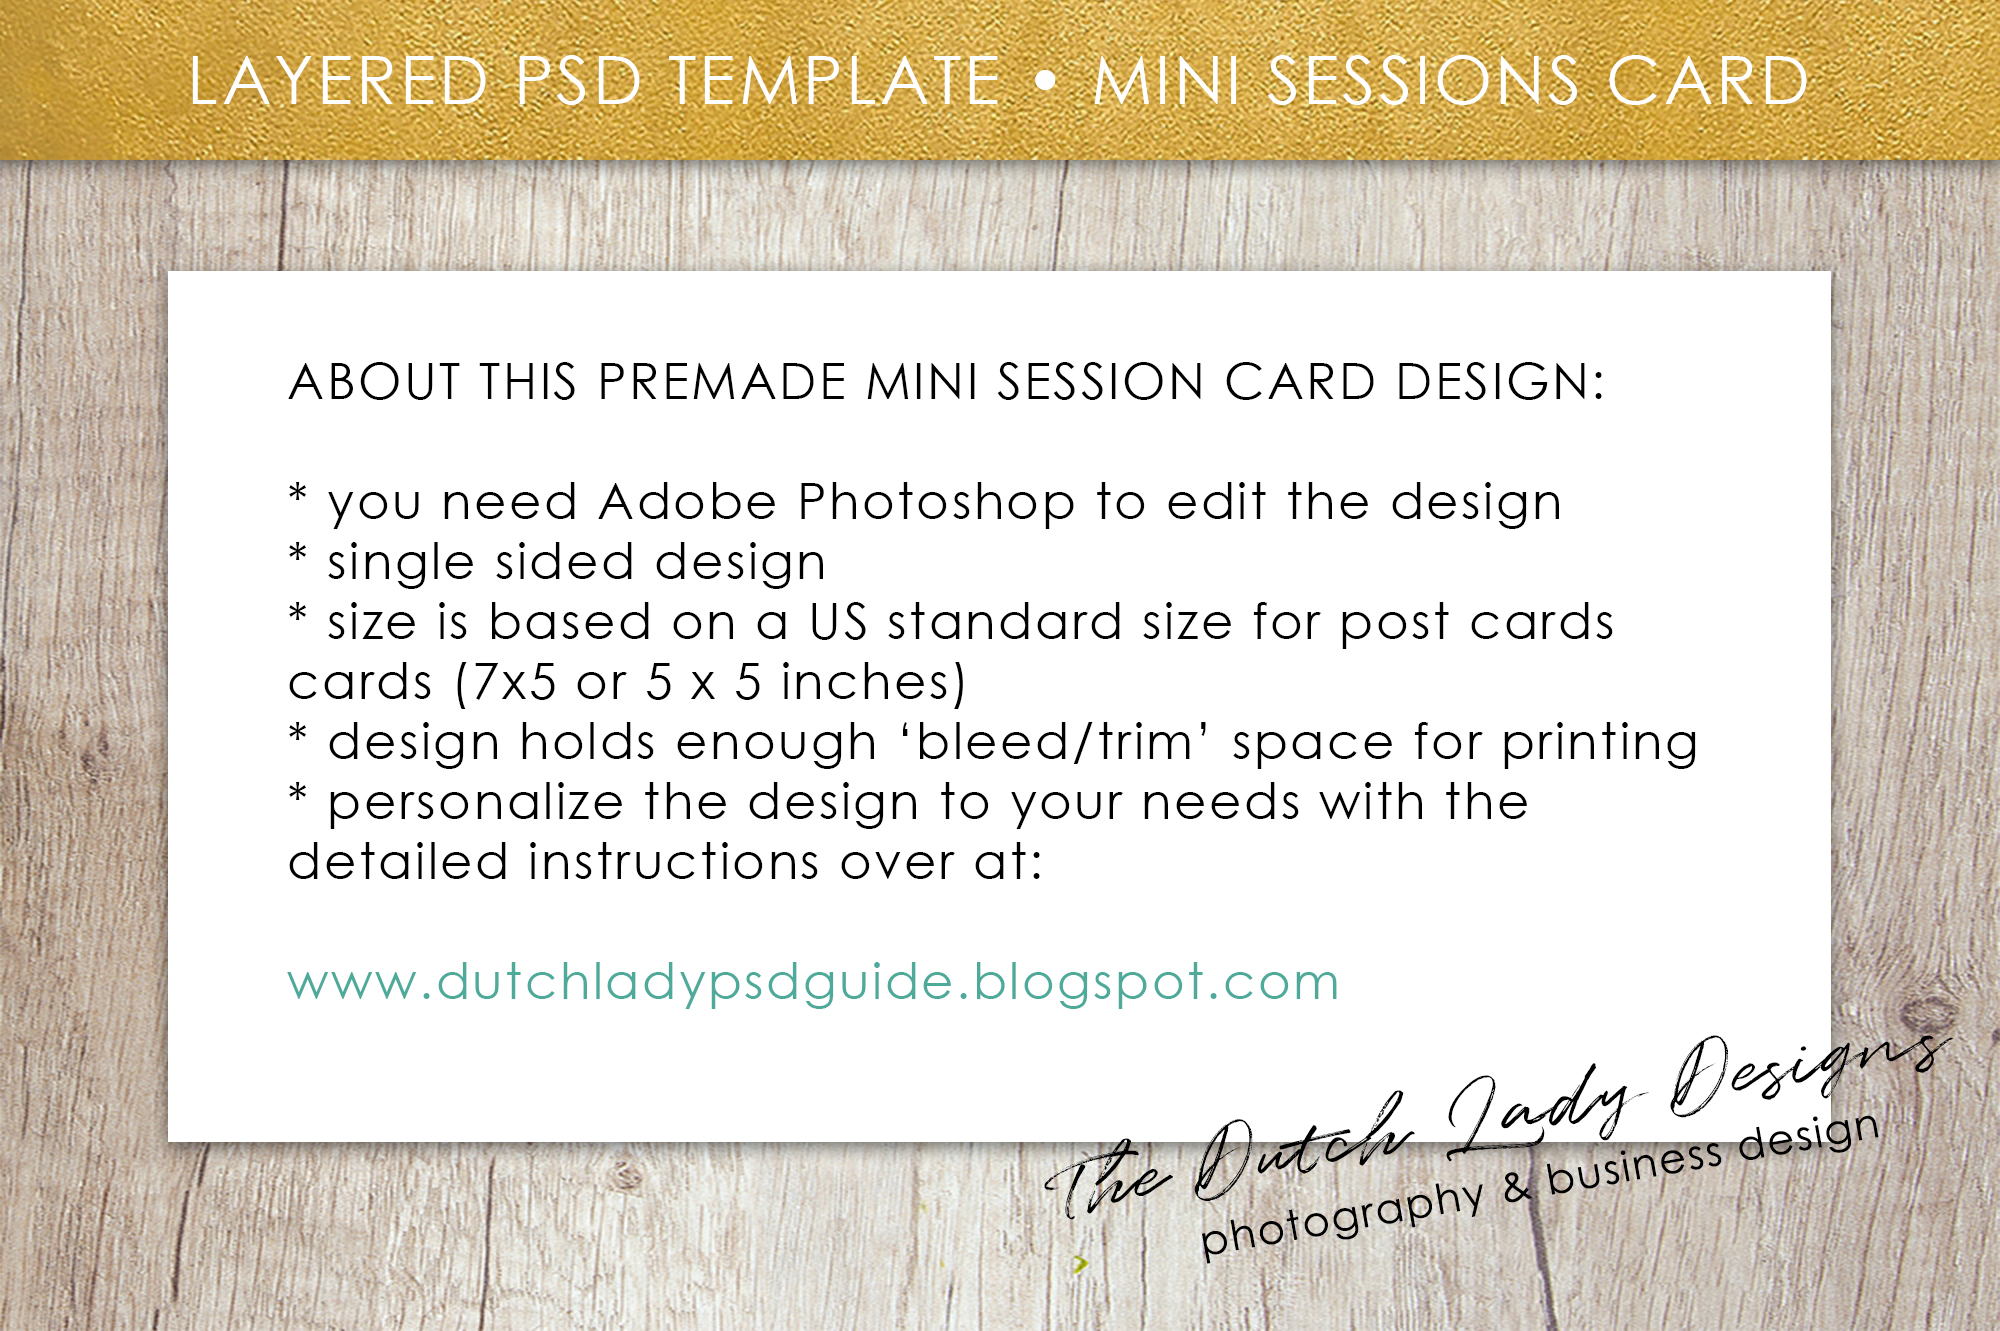 PSD Spring Photo Session Card Template - Design #35 example image 5